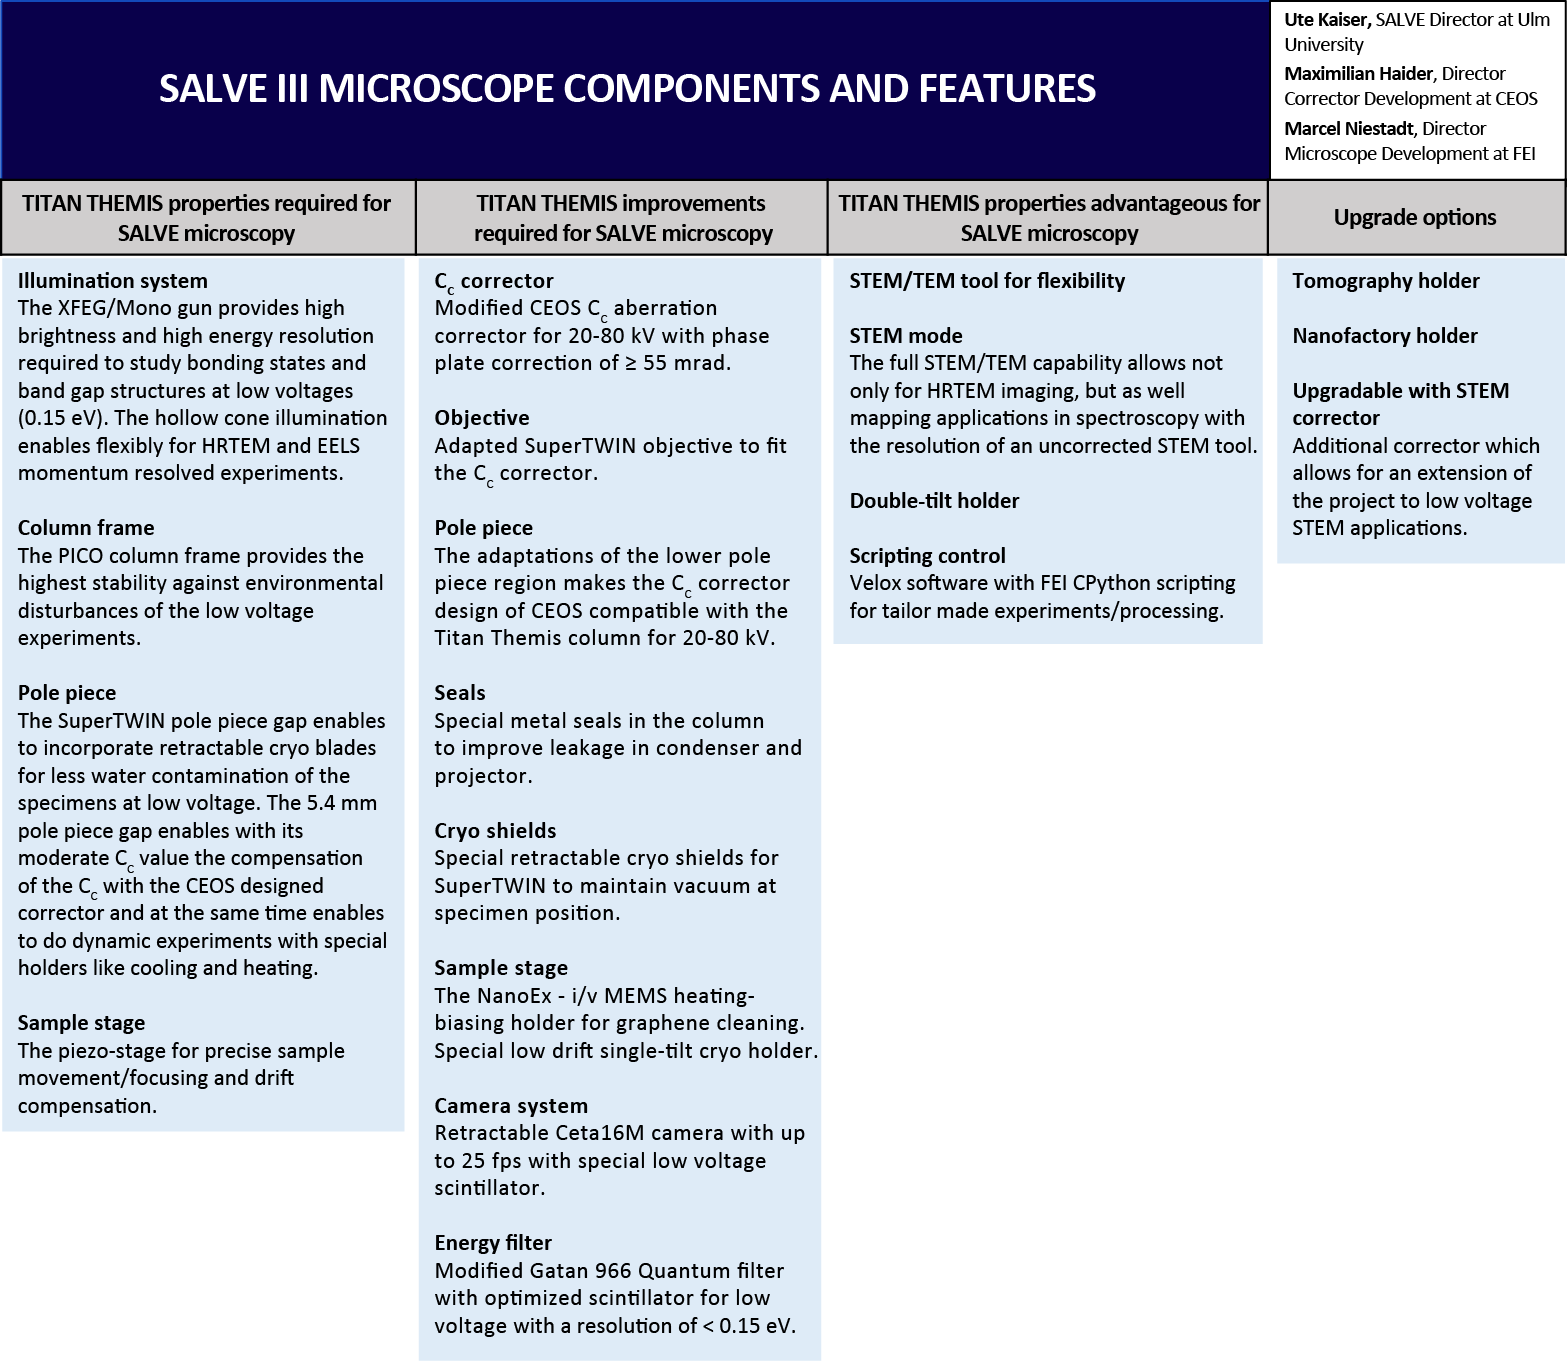 specs of the SALVE III microscope listed in a table